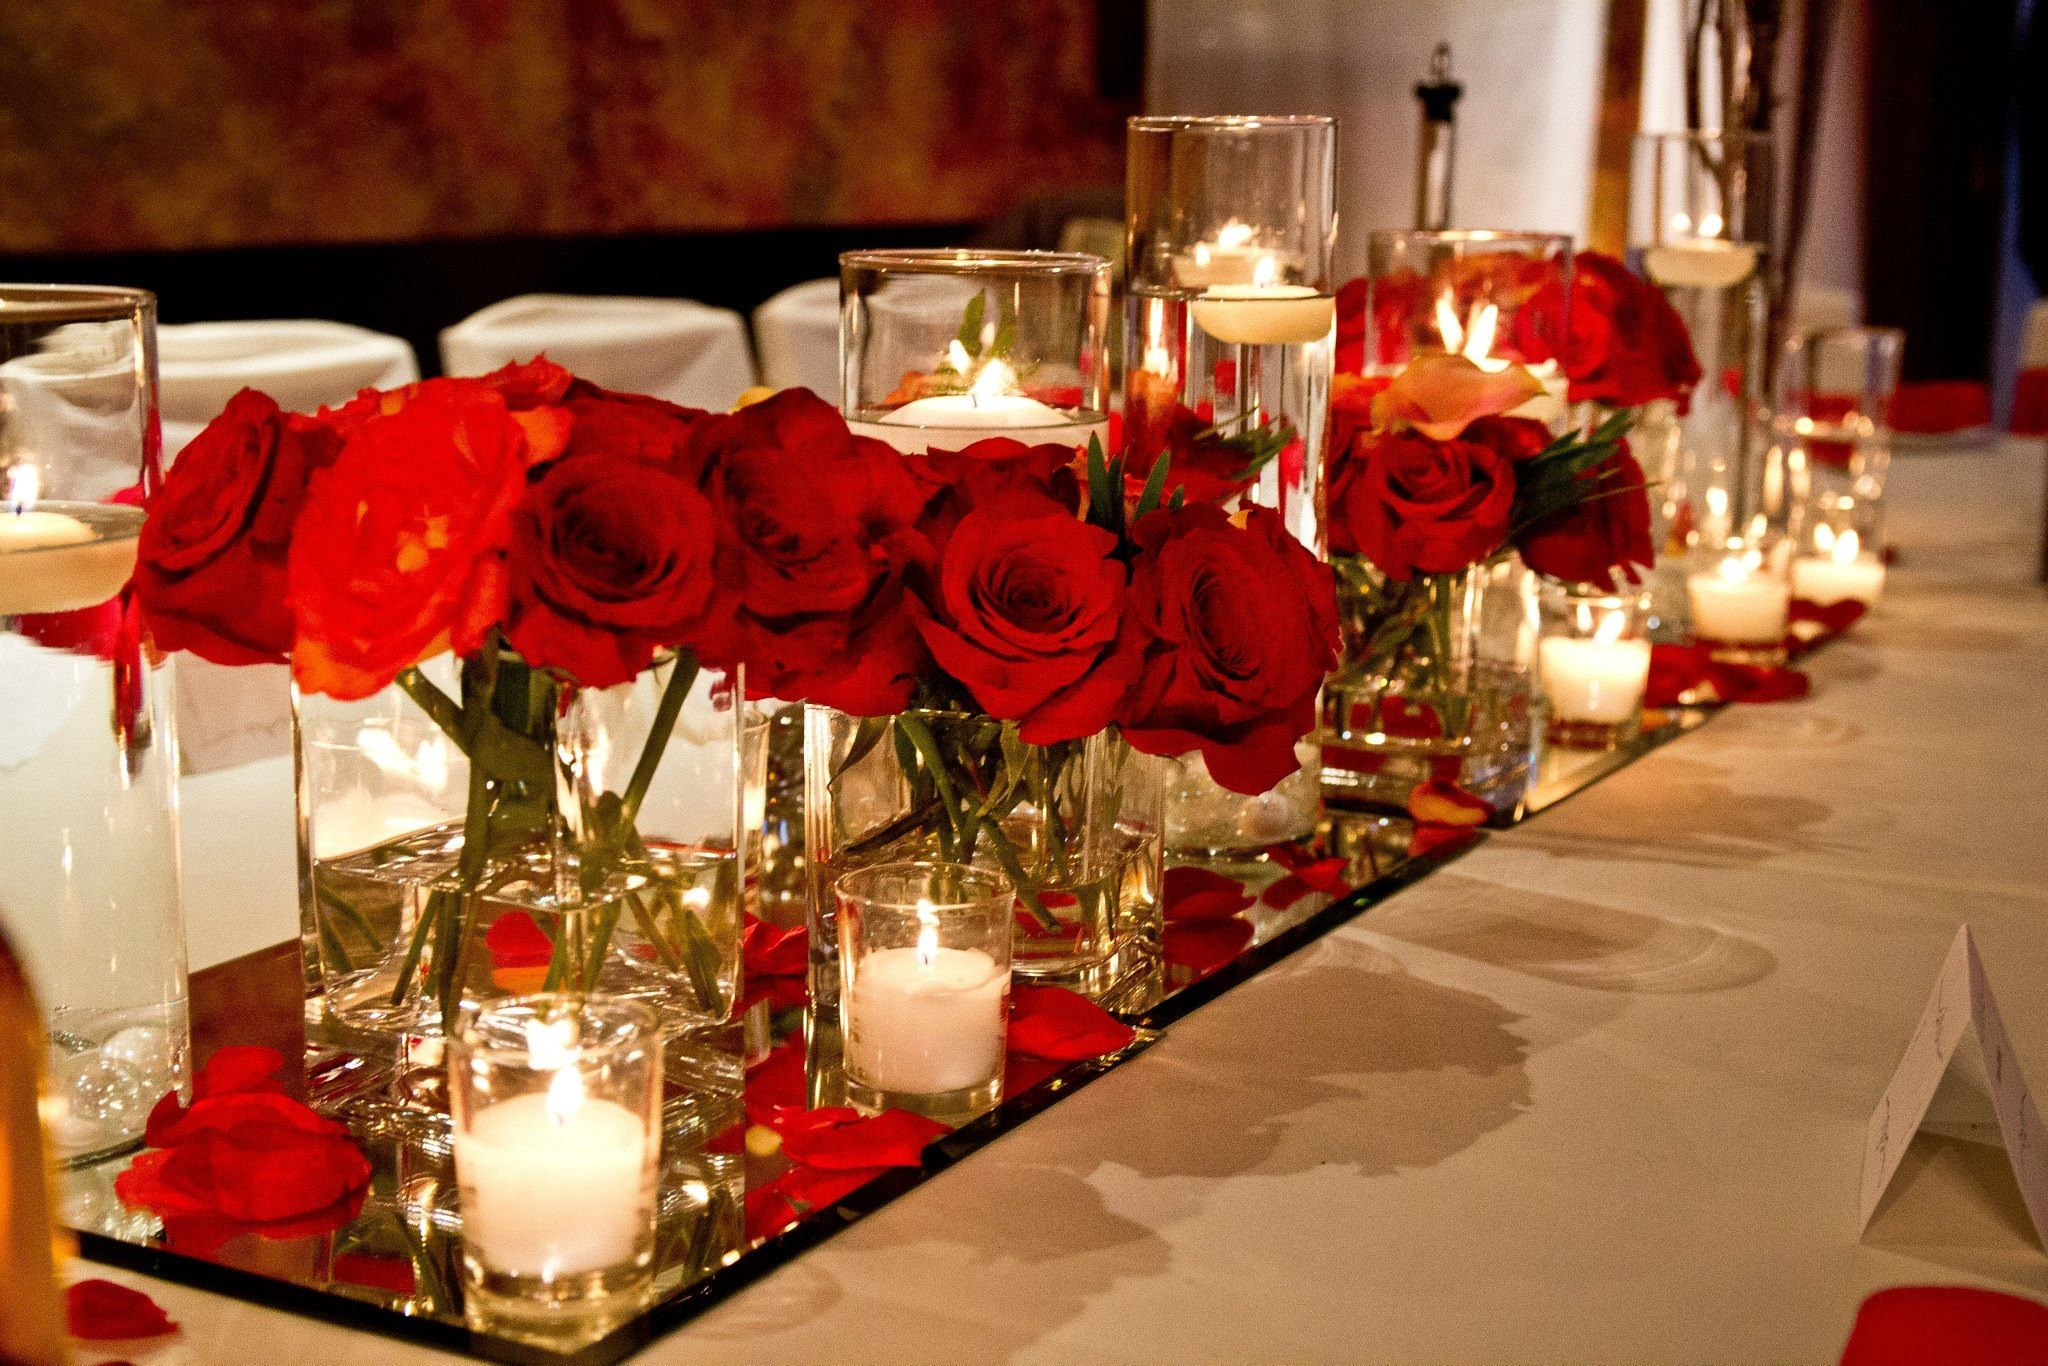 Red rose centrepiece | Centrepieces | Pinterest | Red rose ...